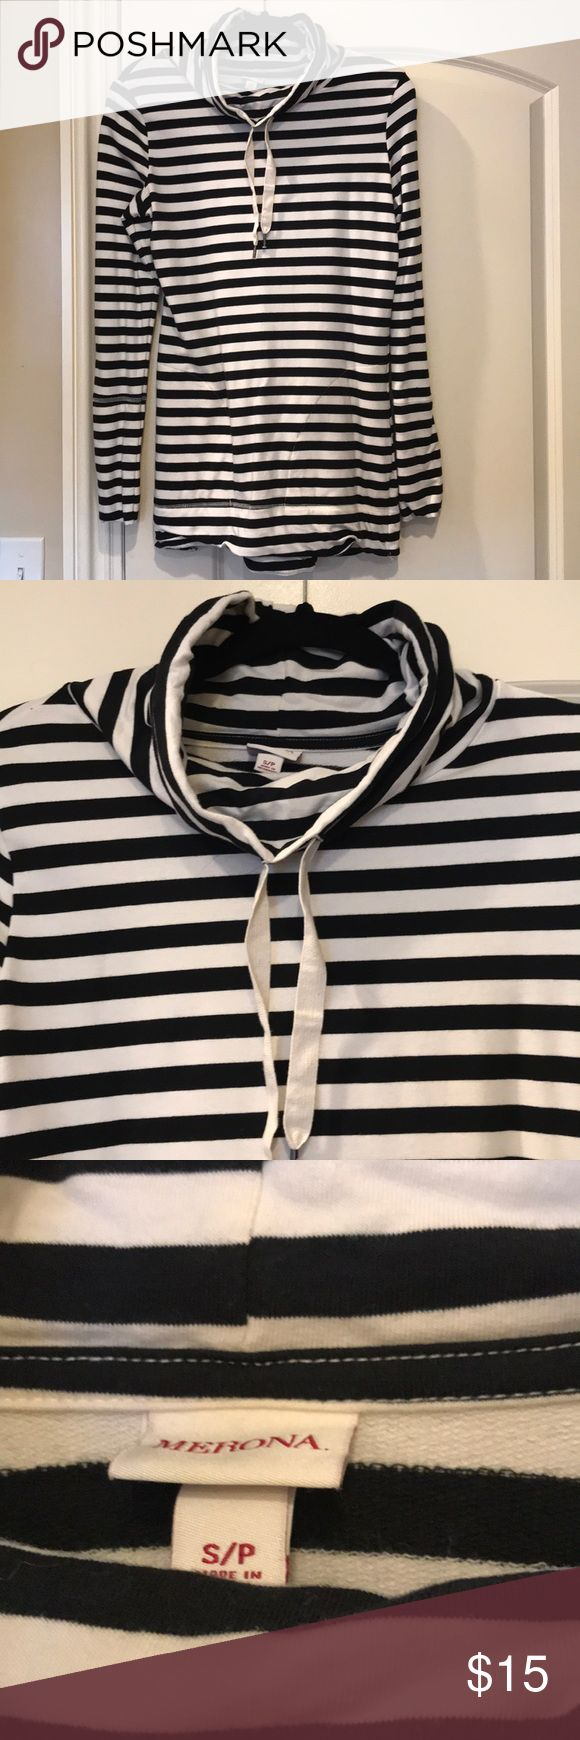 Long sleeve Top Merona black and offwhite stripe top with slouchy turtleneck!! Hangs longer and is slightly longer in the back! Like new! Size small Merona Tops Sweatshirts & Hoodies